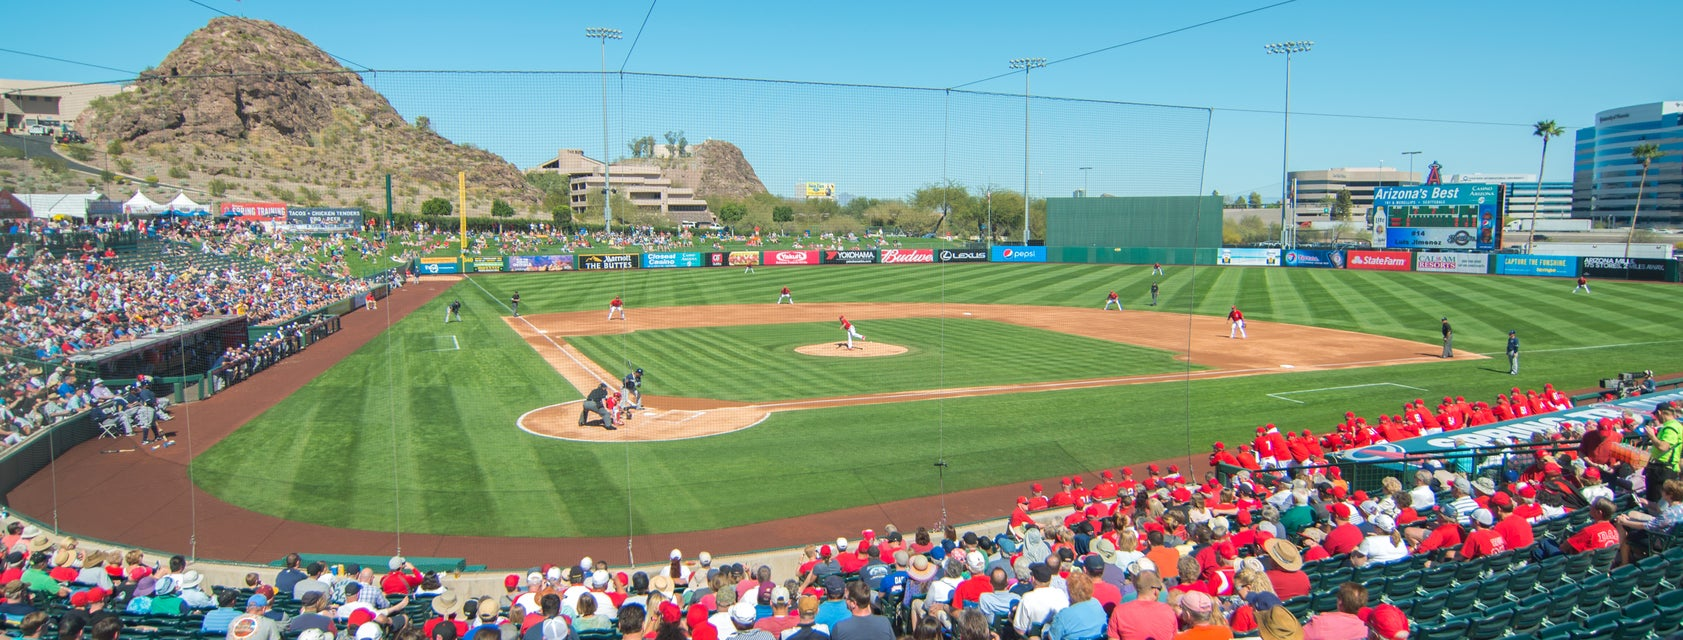 Angels - Spring Training Tickets